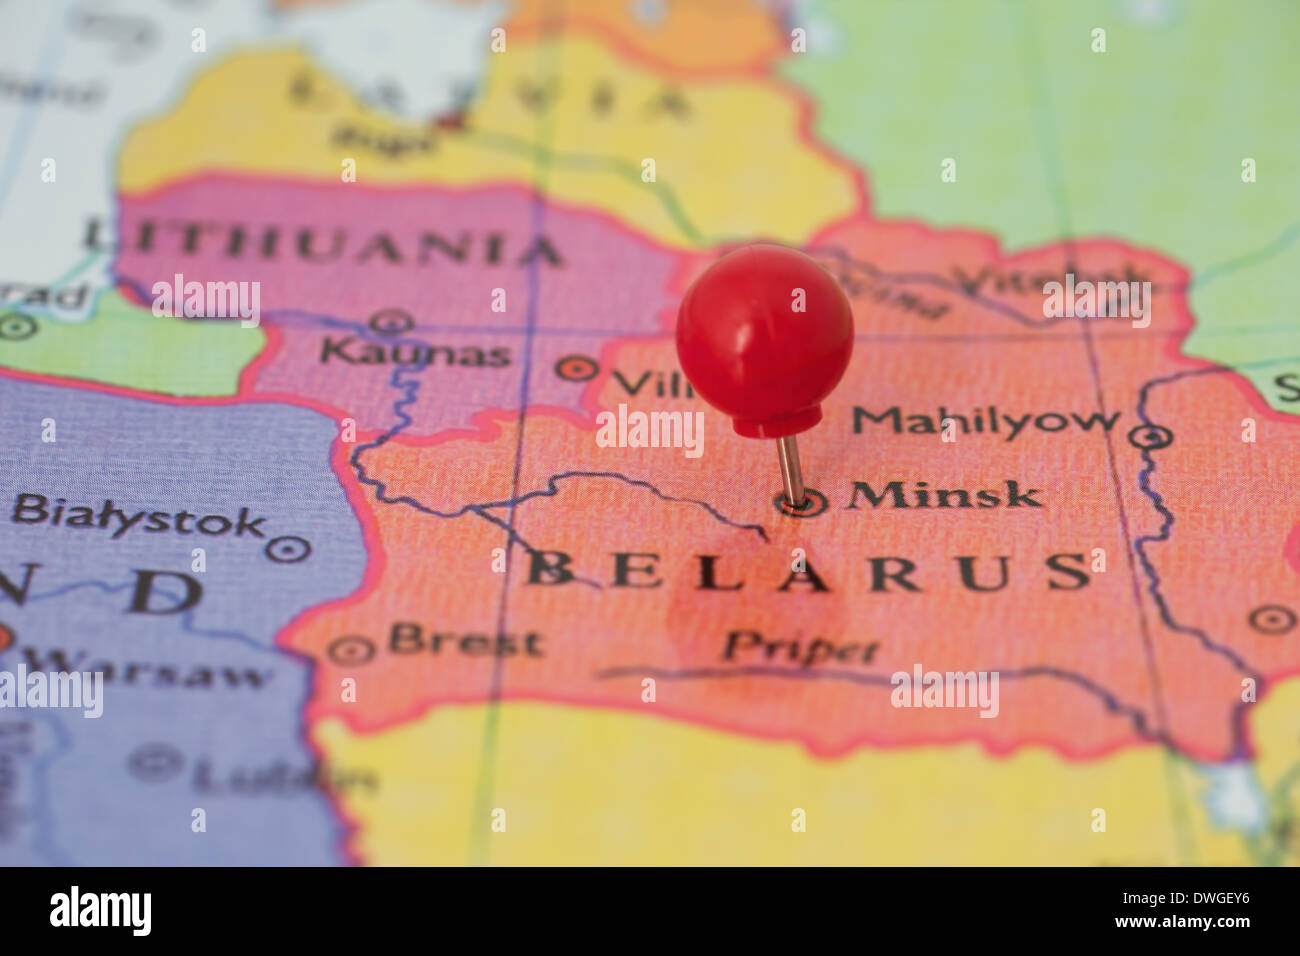 Round red thumb tack pinched through city of Minsk on Belarus map. Part of collection covering all major capitals of Europe. - Stock Image